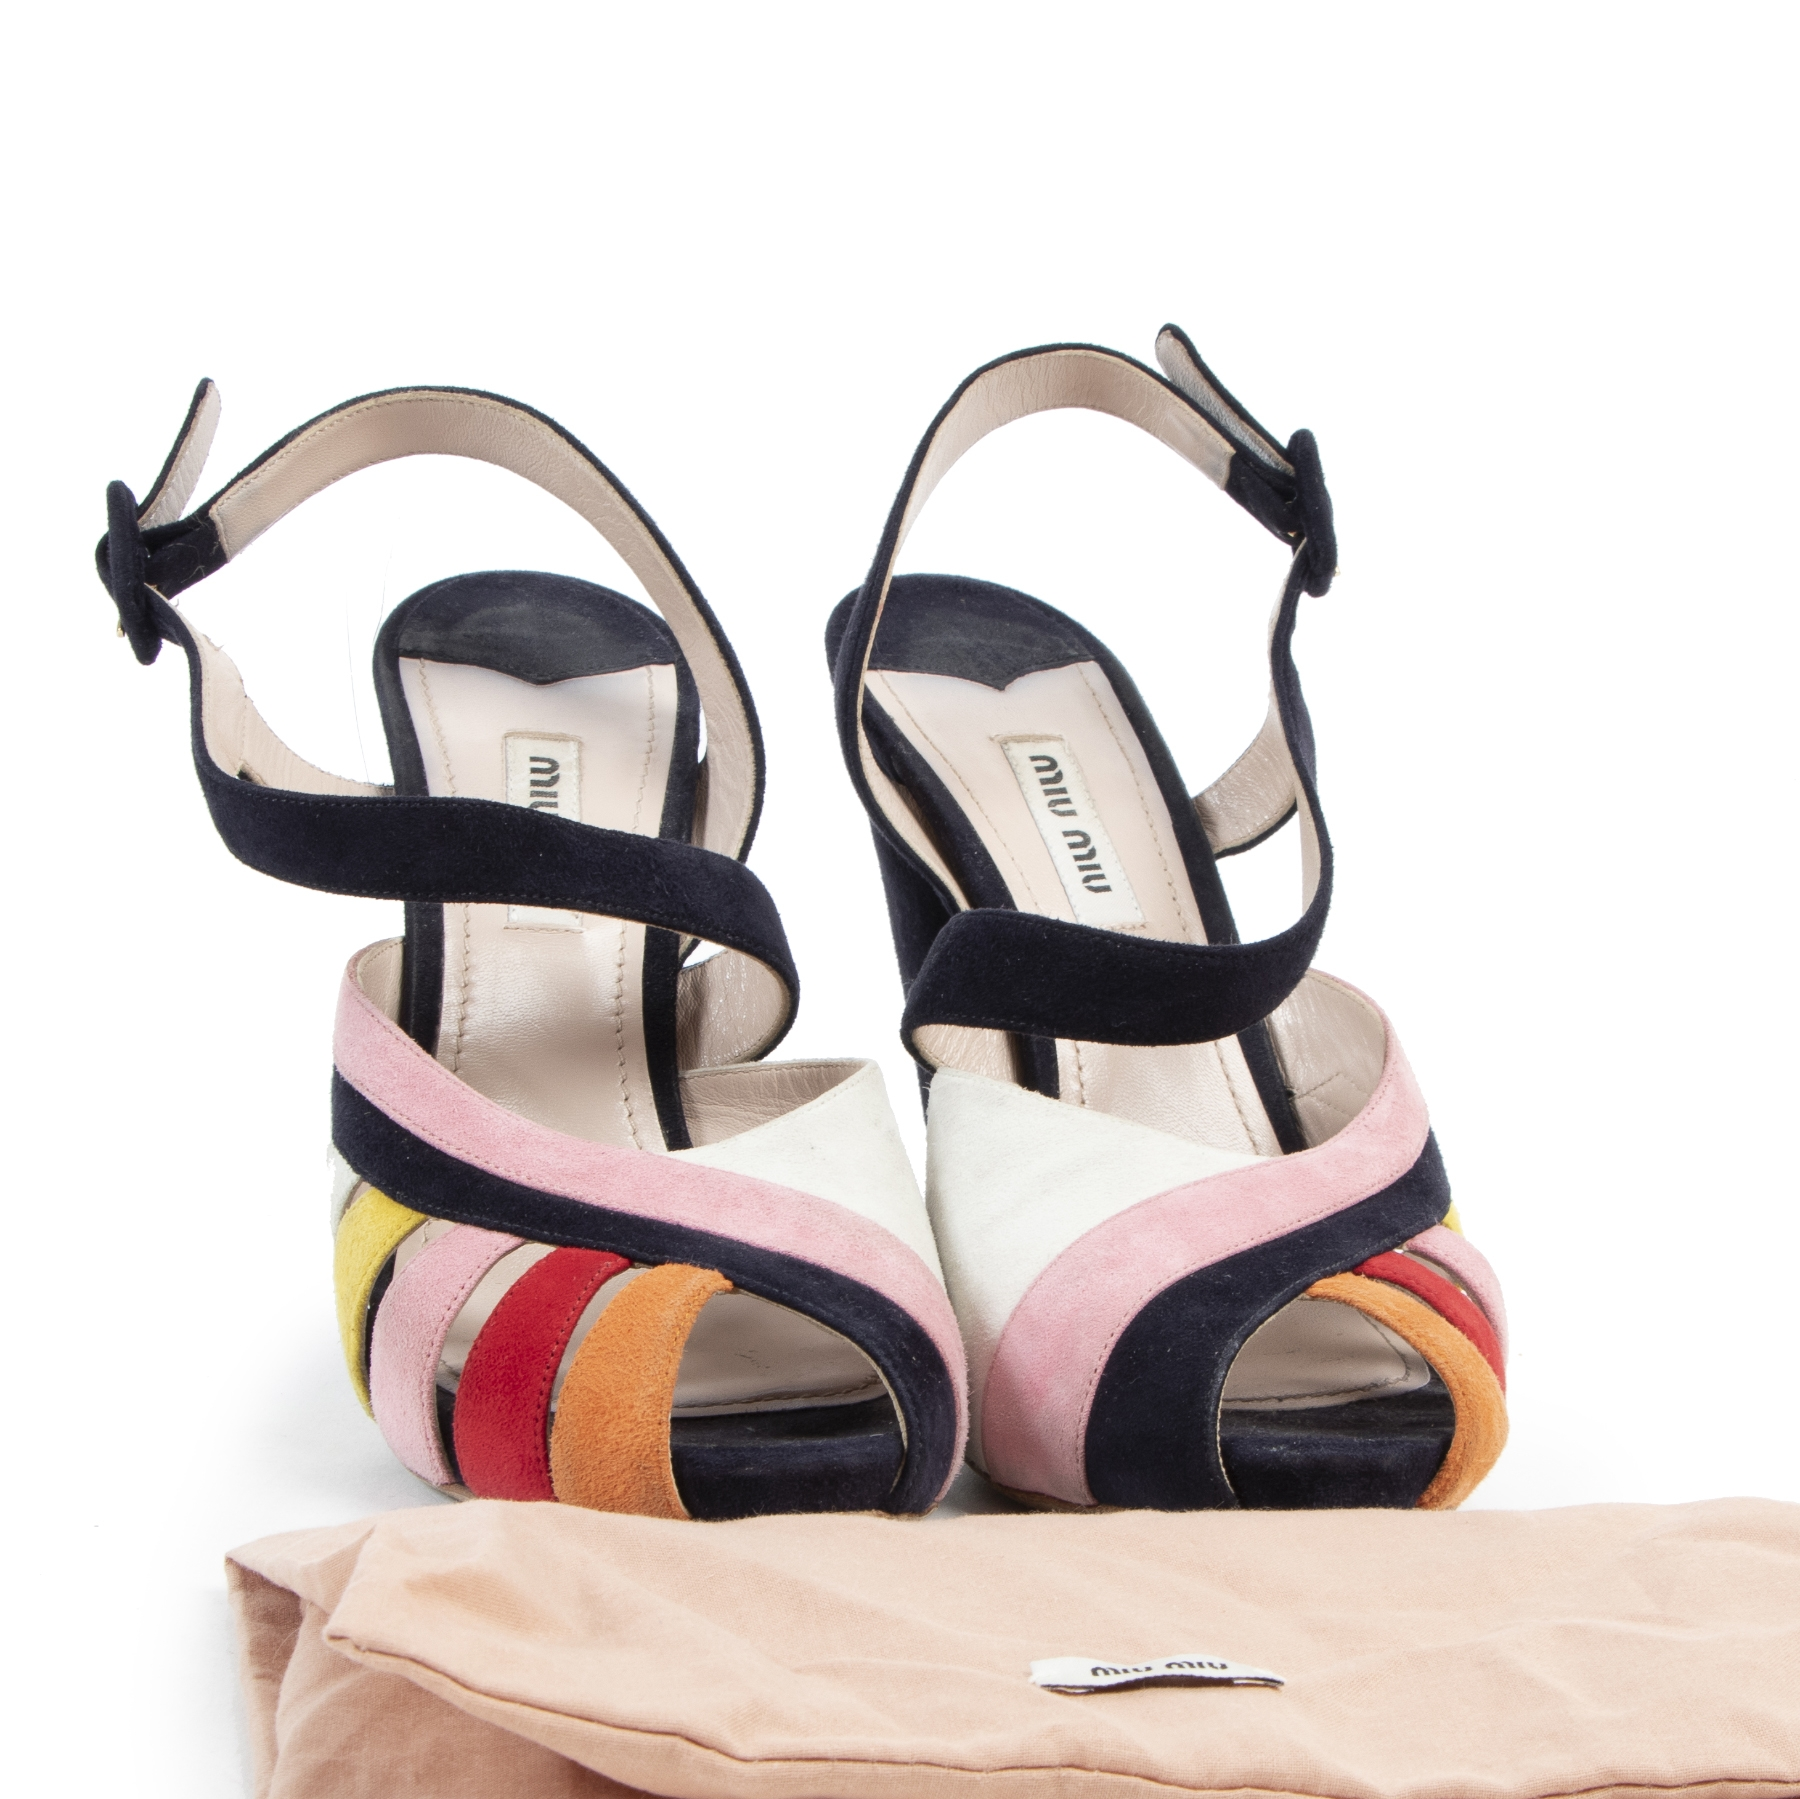 Buy preloved Miu Miu heels at LabelLOV Antwerp.